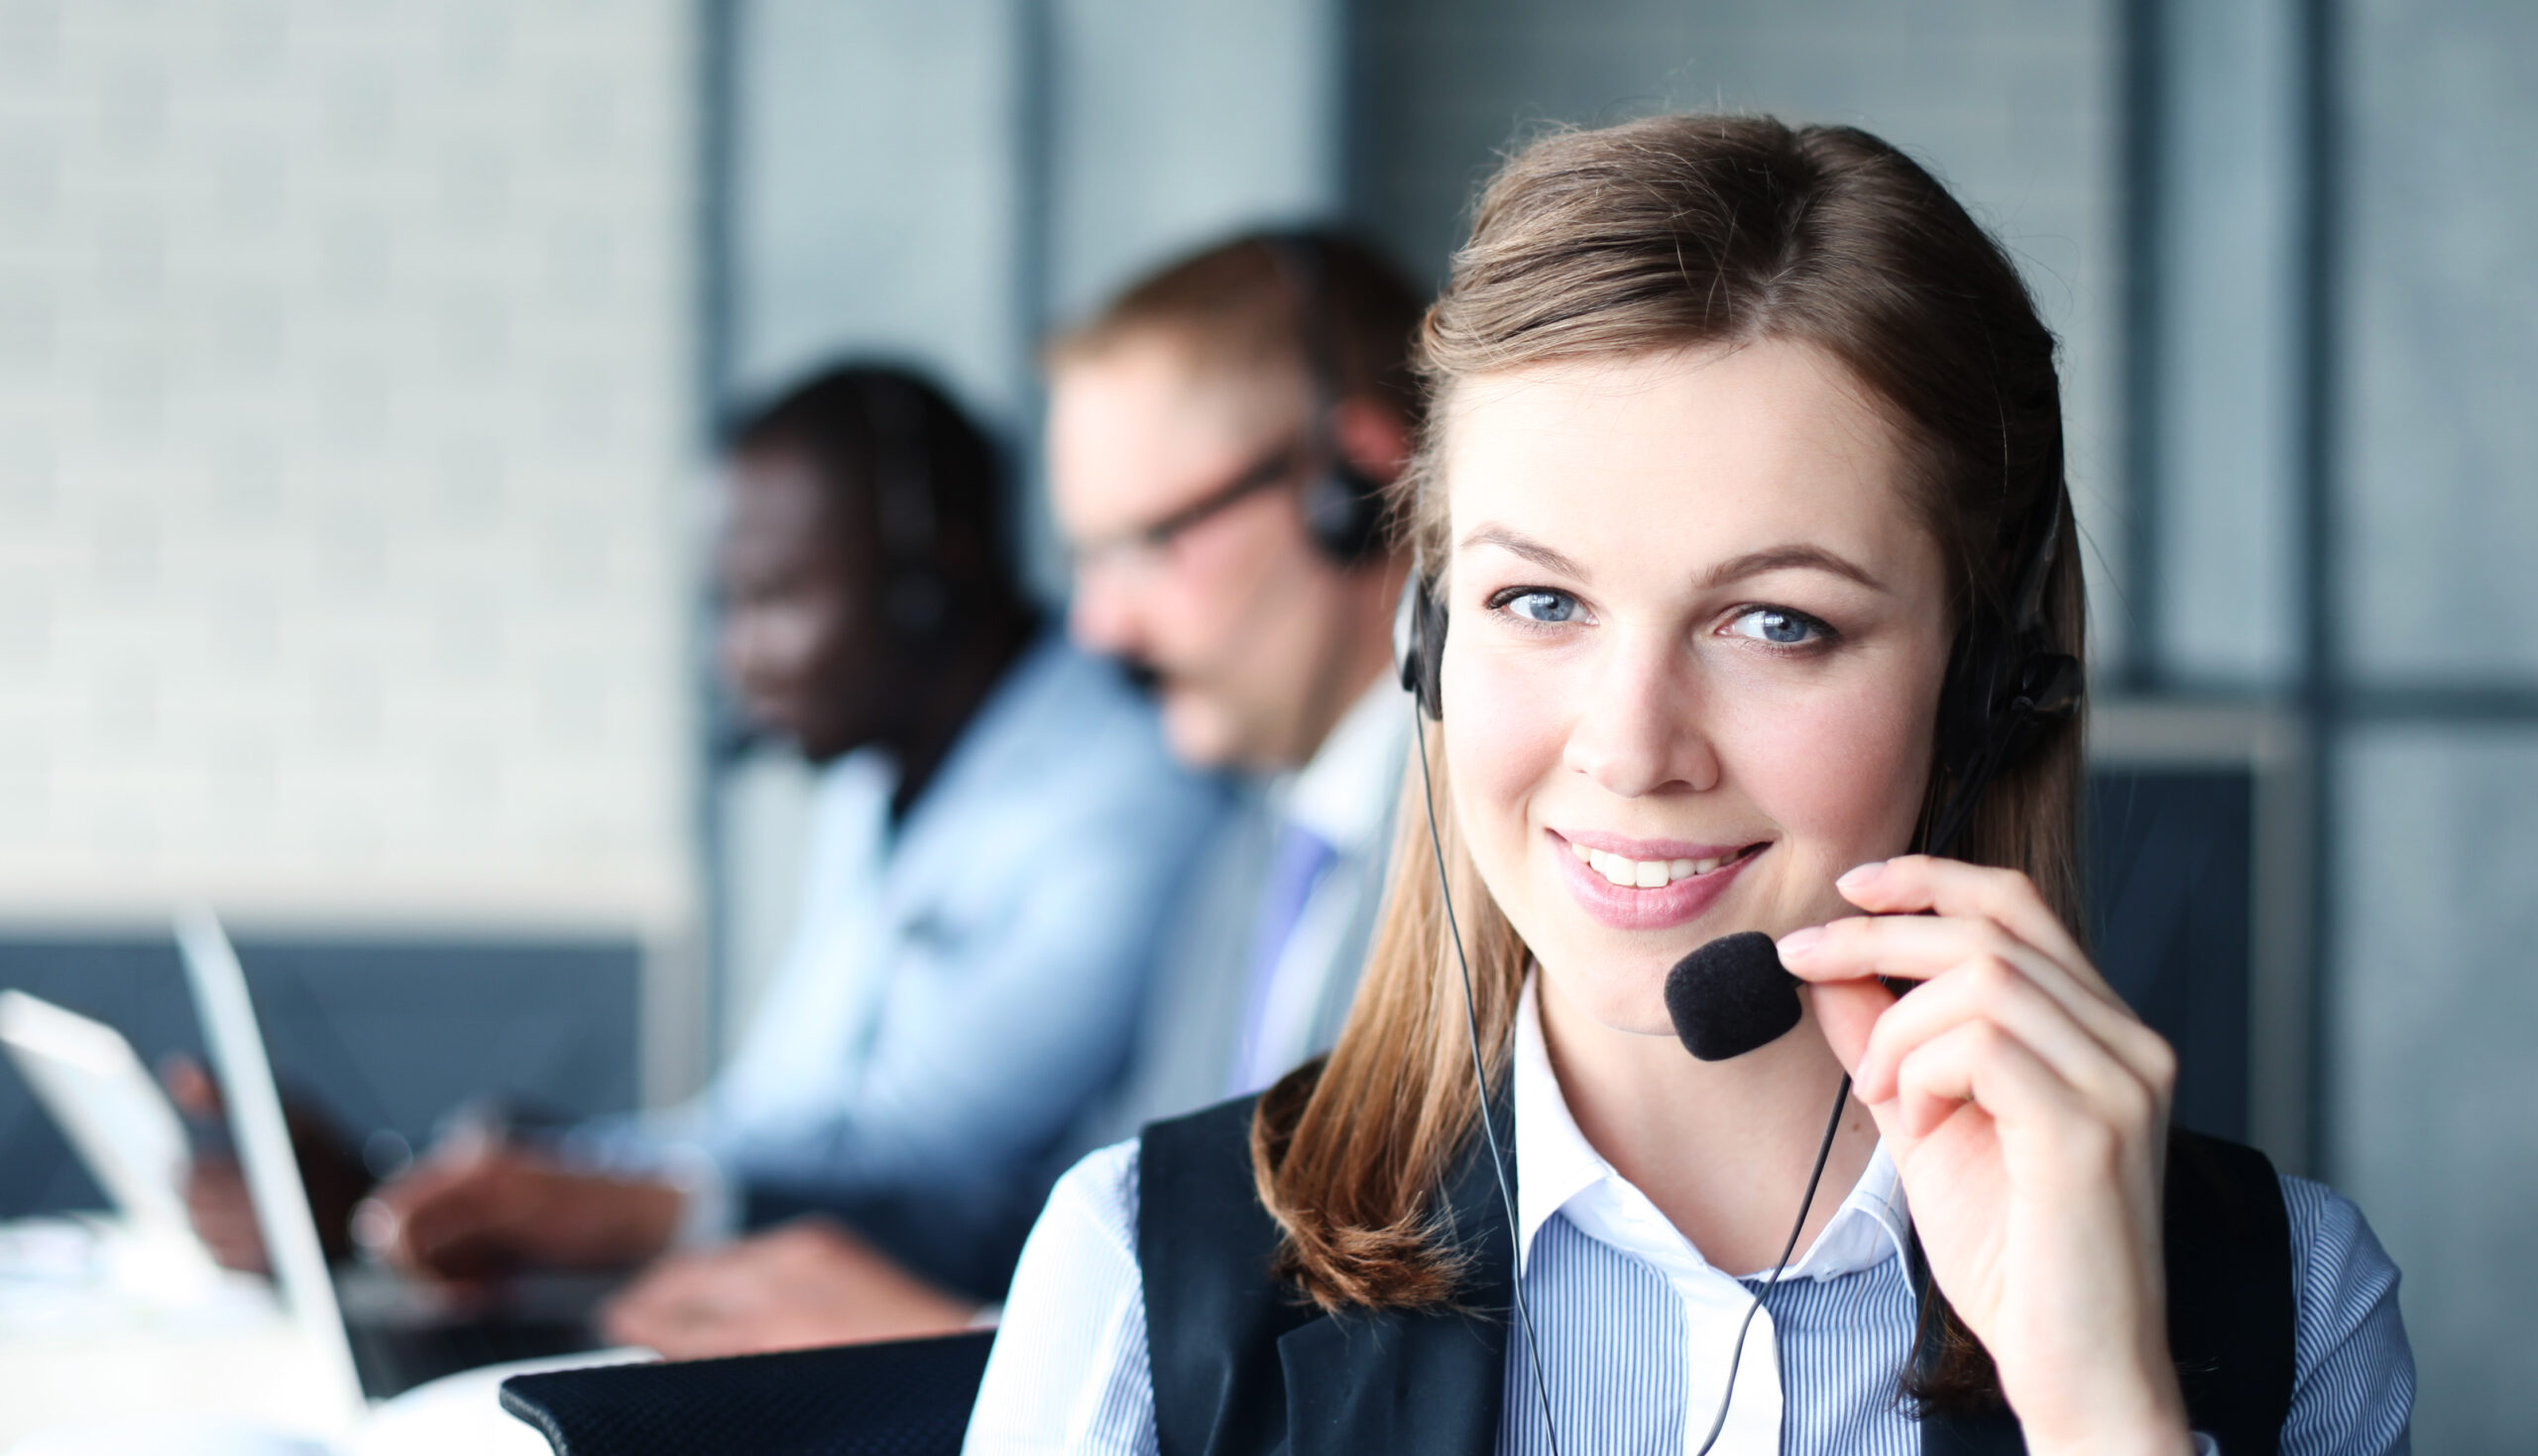 Portrait,Of,Call,Center,Worker,Accompanied,By,Her,Team.,Smiling